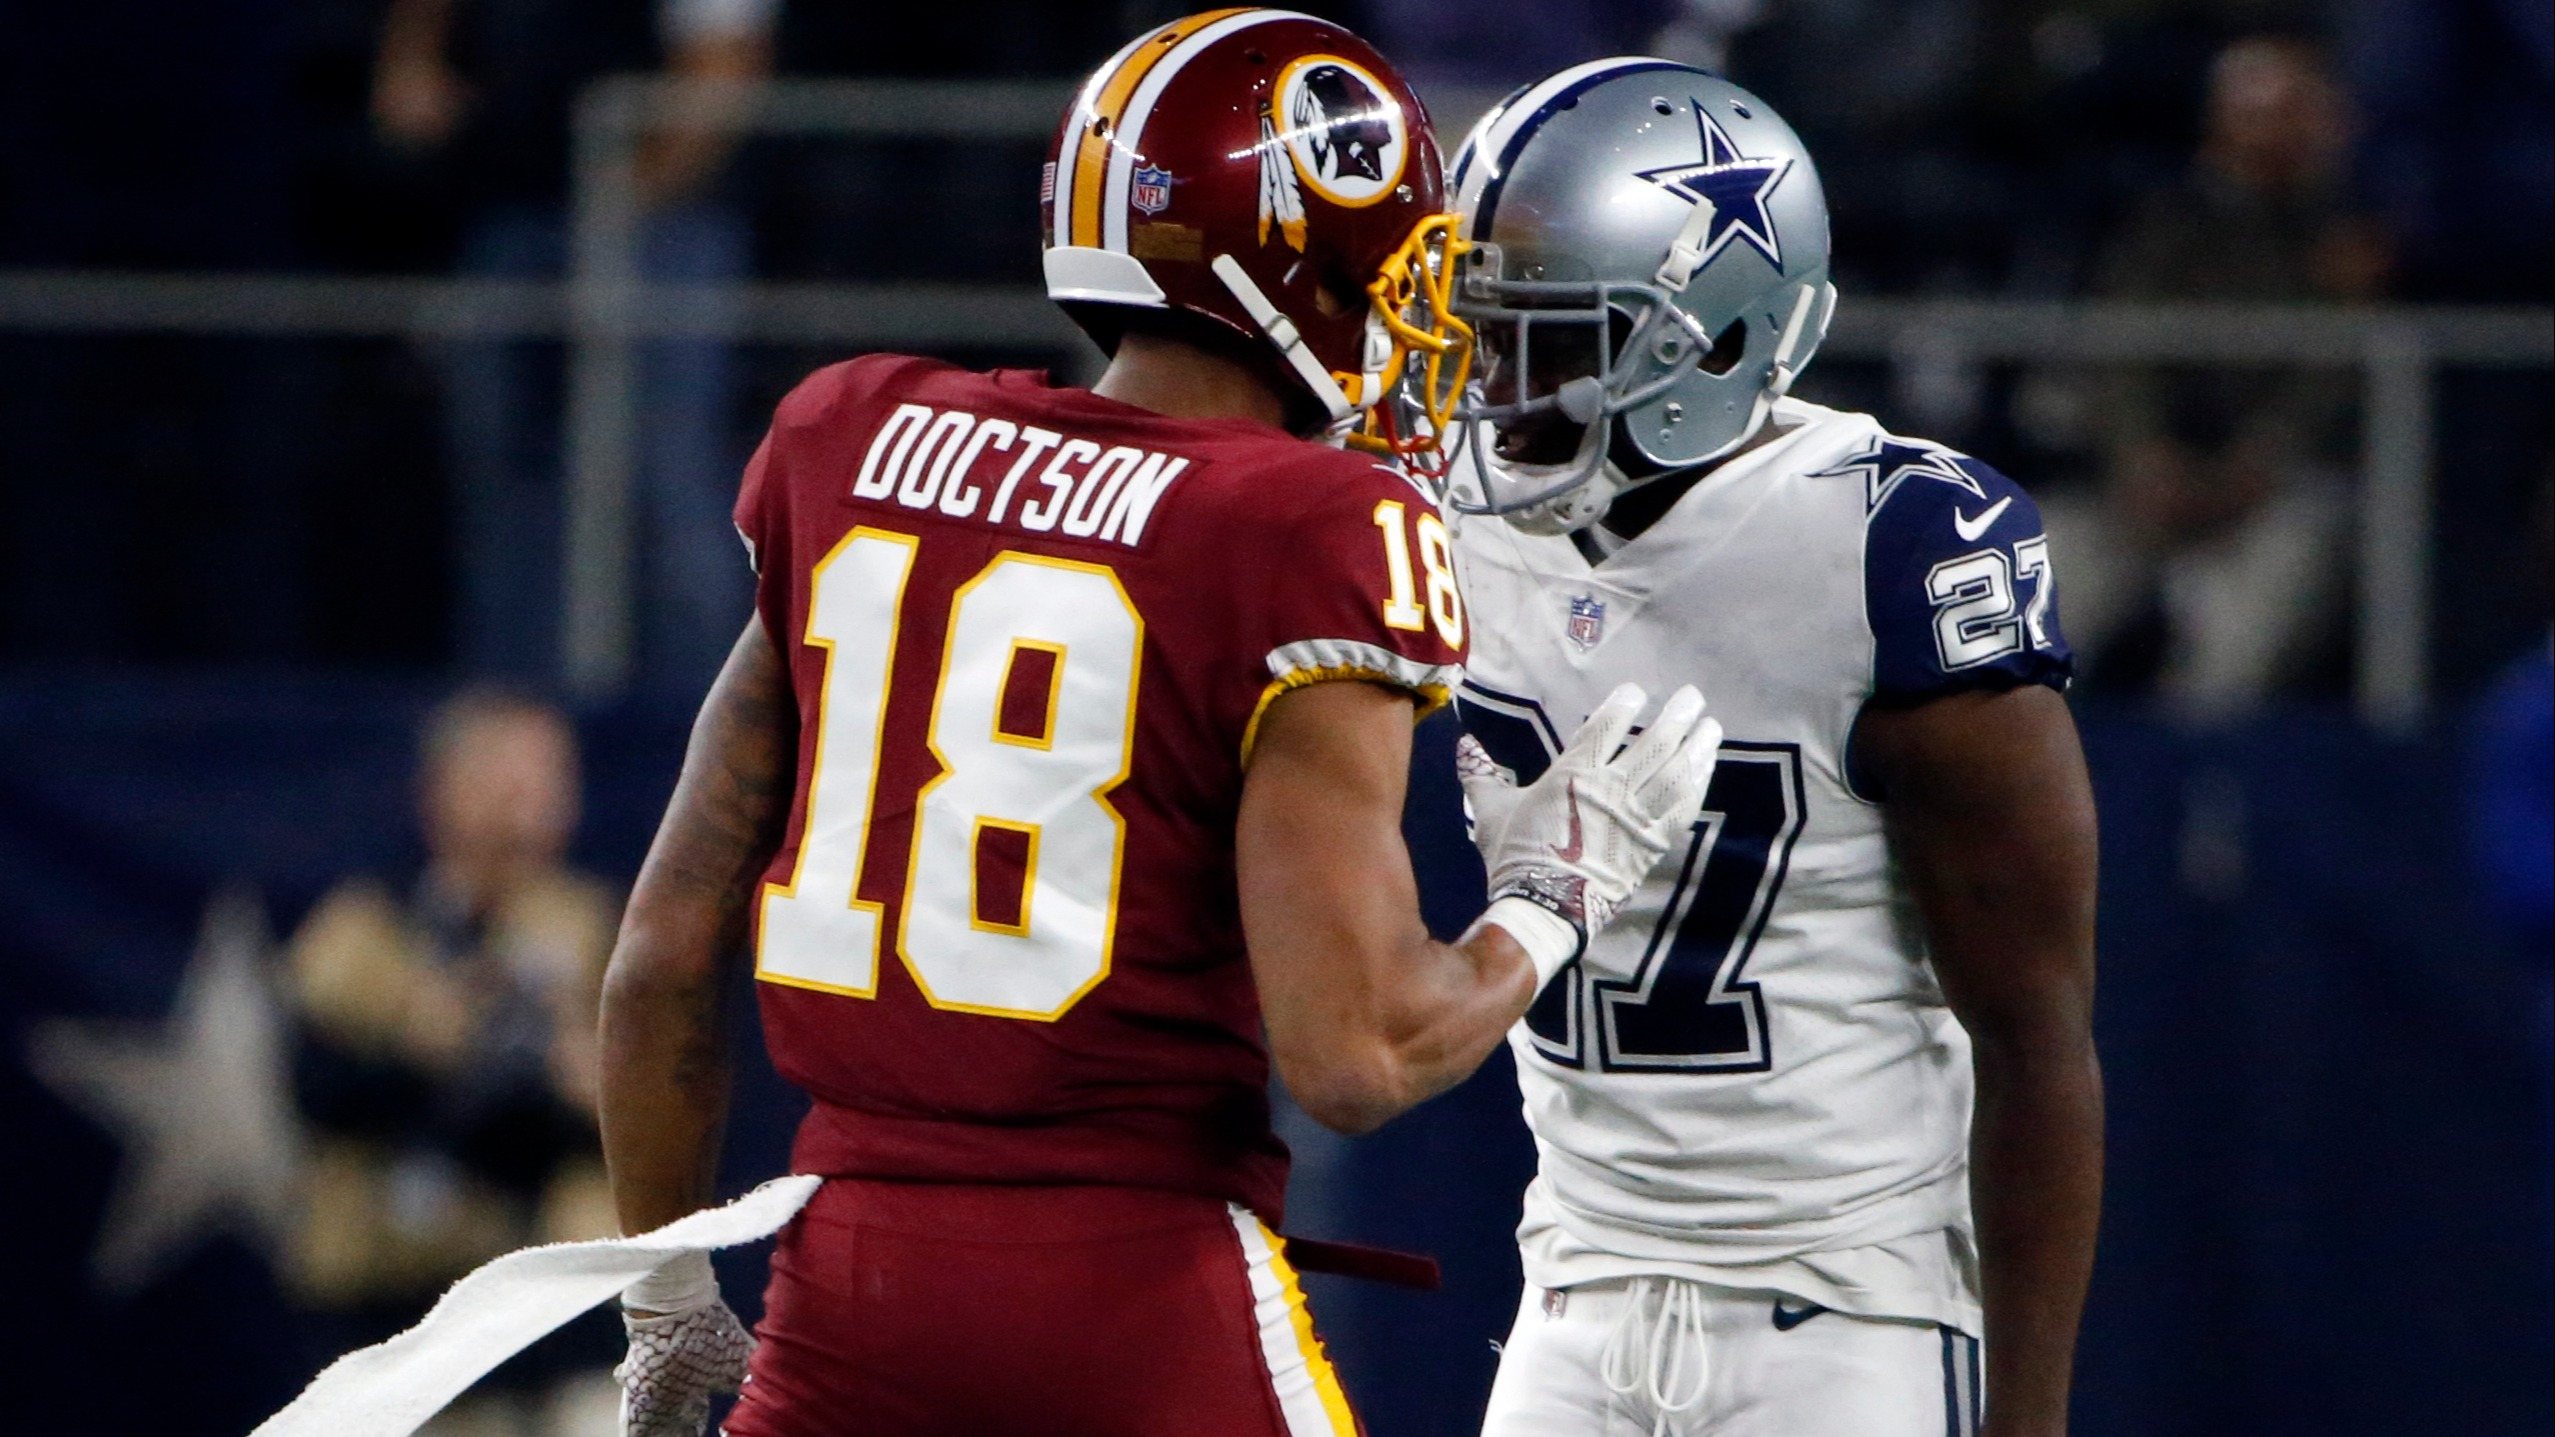 Cowboys redskins line betting investment account holders definition of socialism